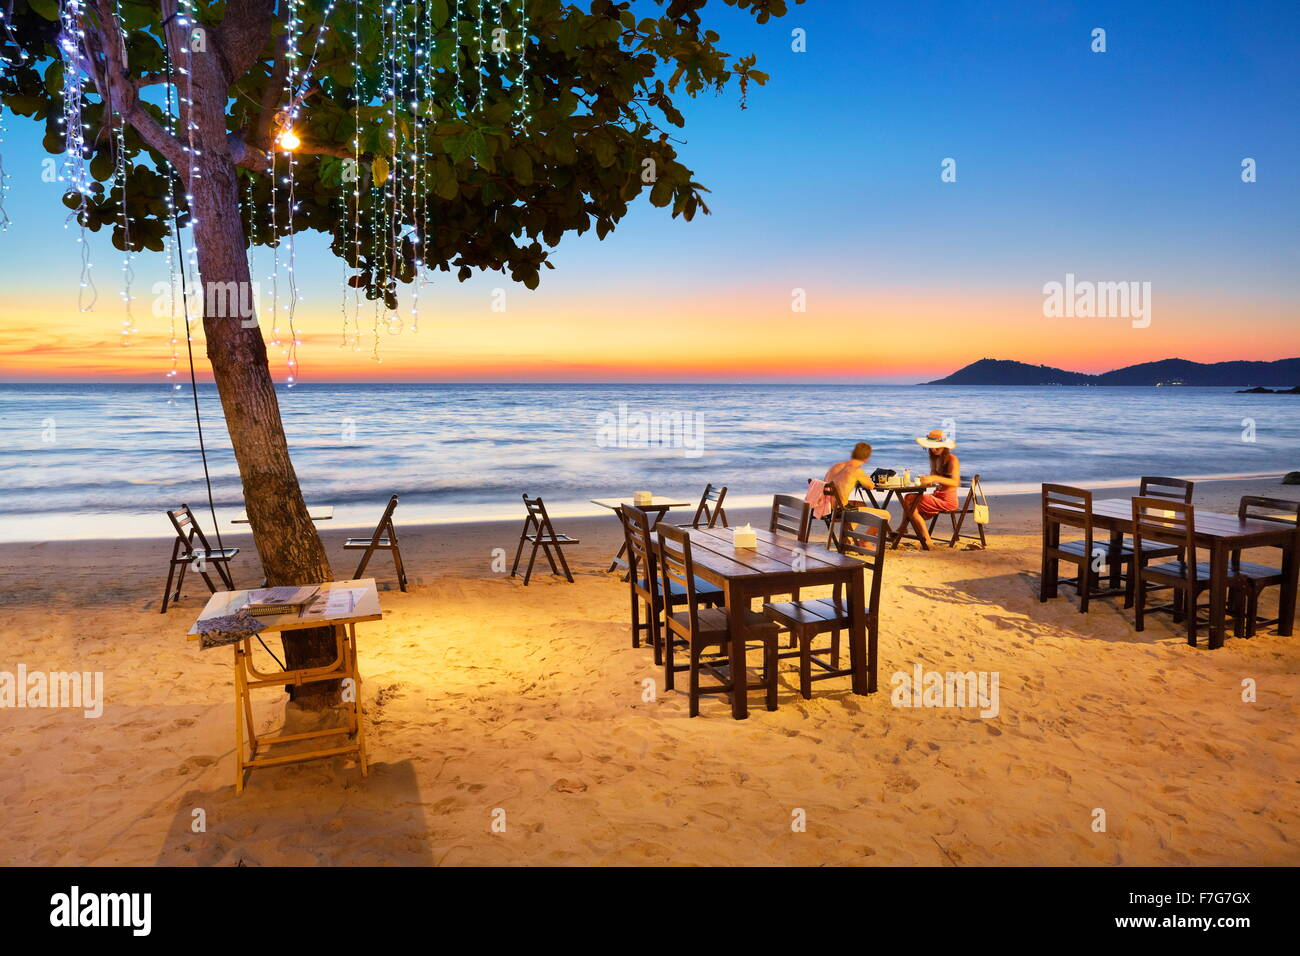 Beach Restaurant after sunset, Koh Samet Island, Thailand - Stock Image